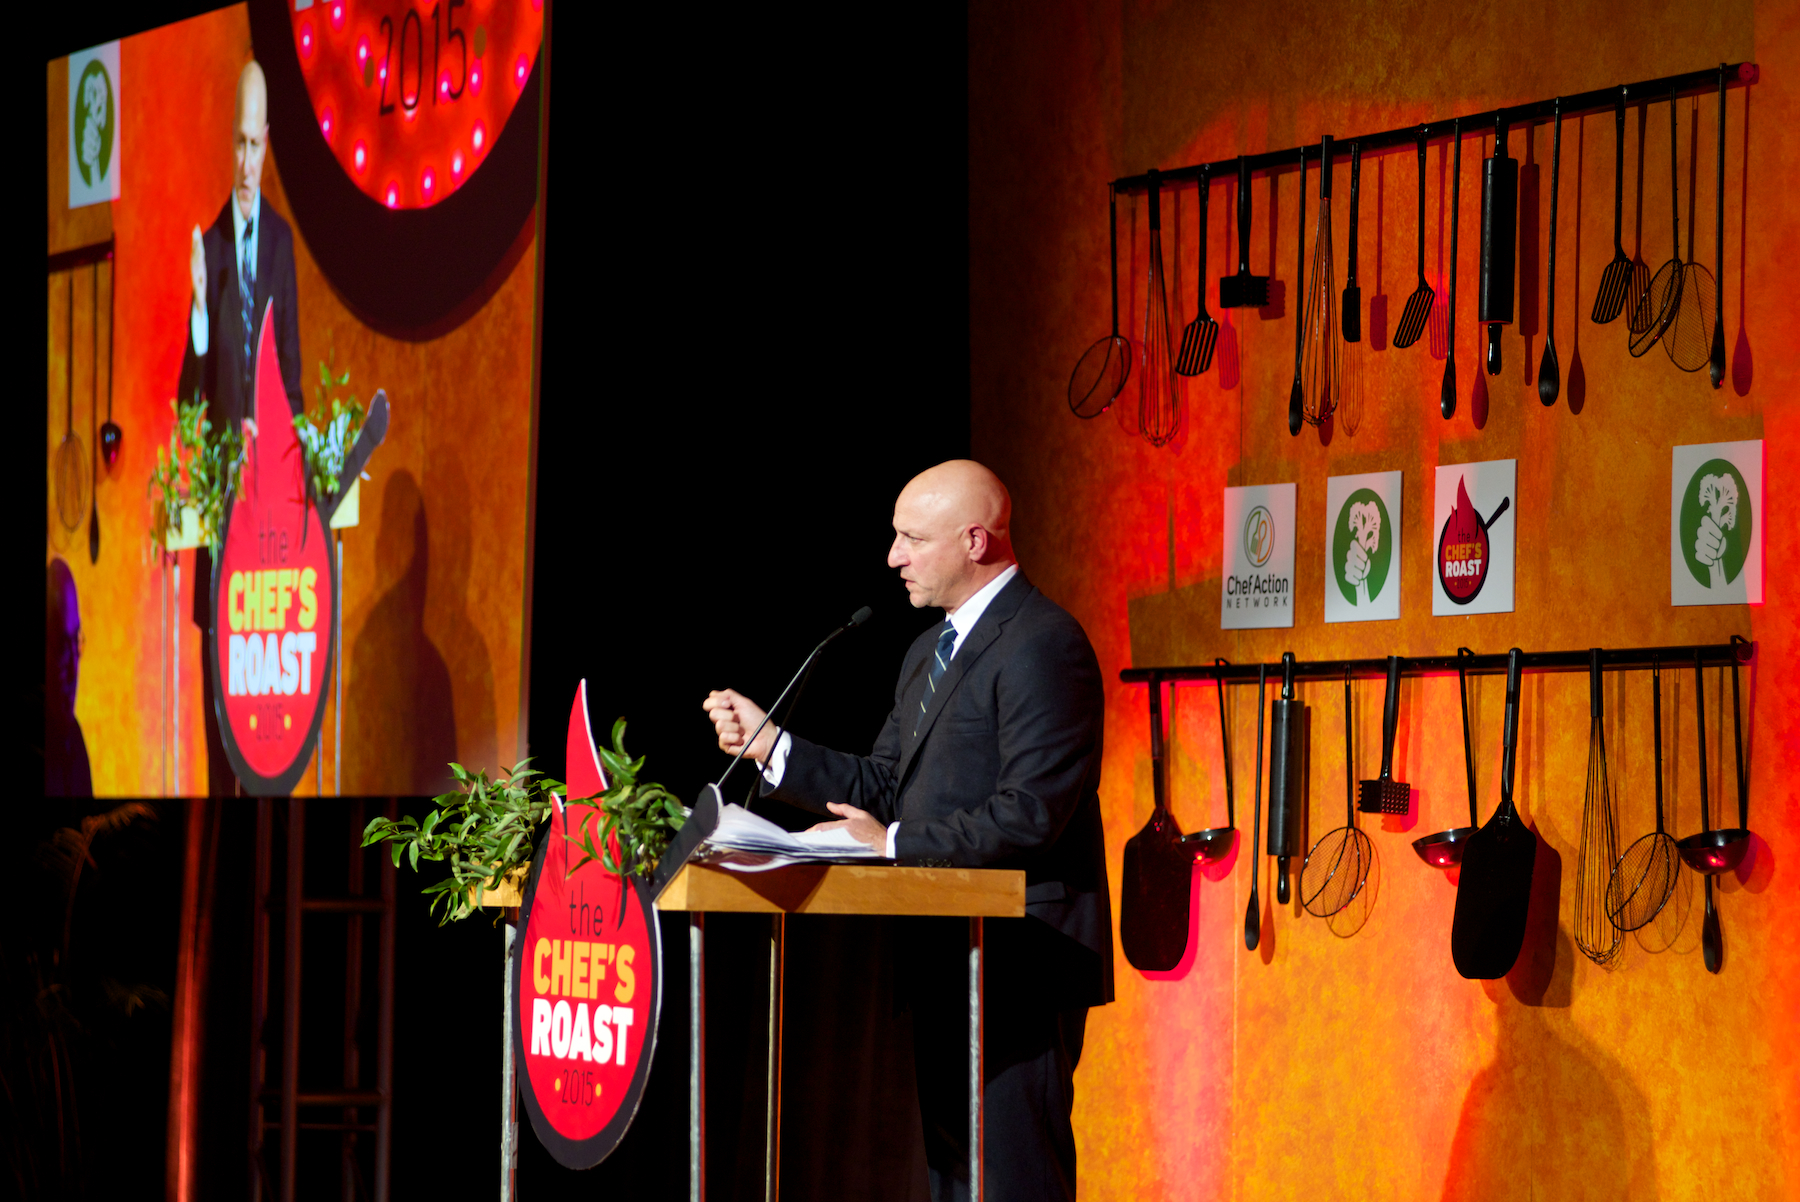 Tom Colicchio at the 2nd Annual Chef's Roast. (Photo Courtesy of Ben Droz)